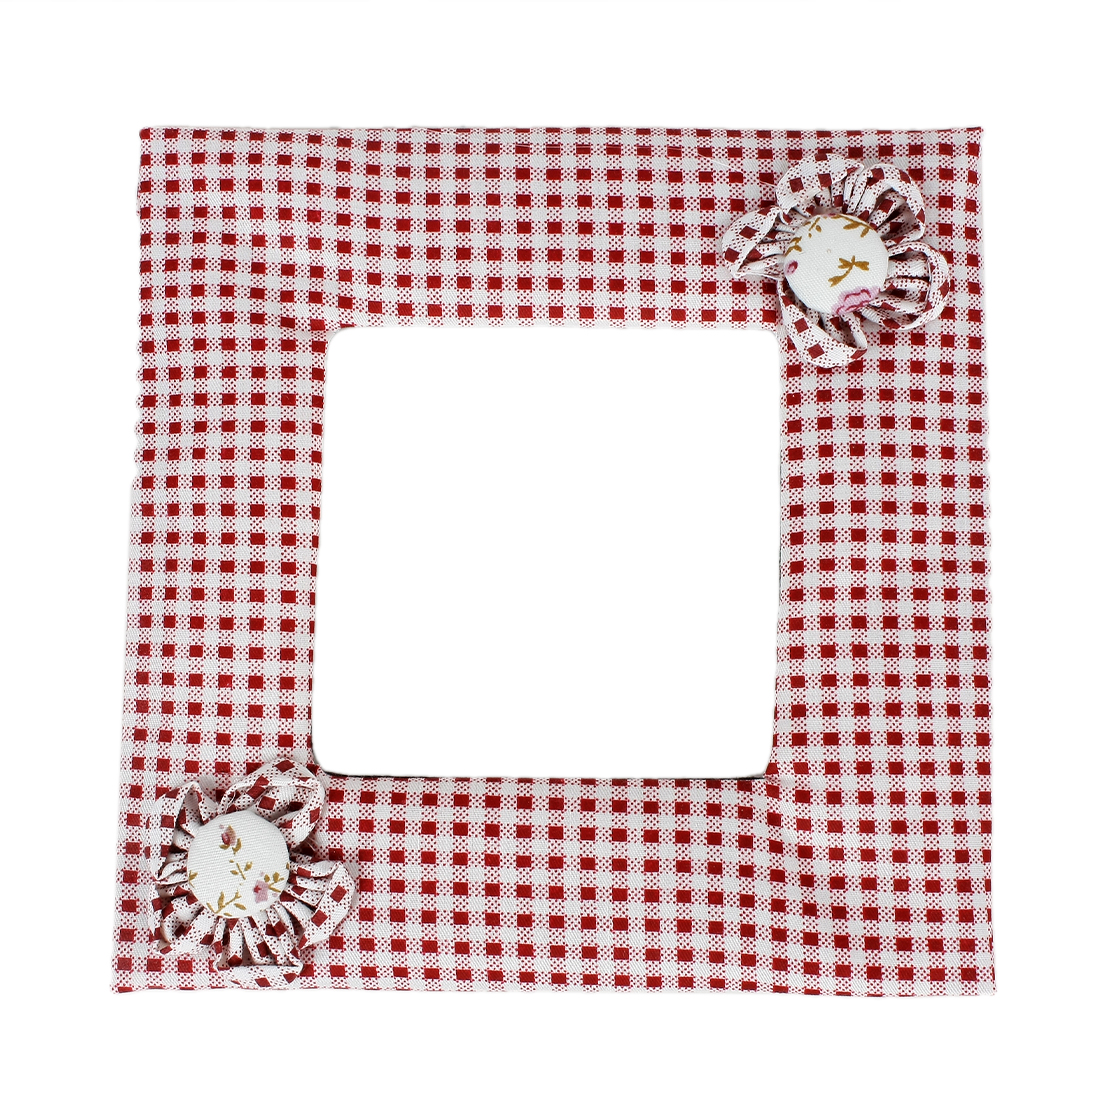 Grid Switch Cover Wall Cloth Lace Sticker Decoration